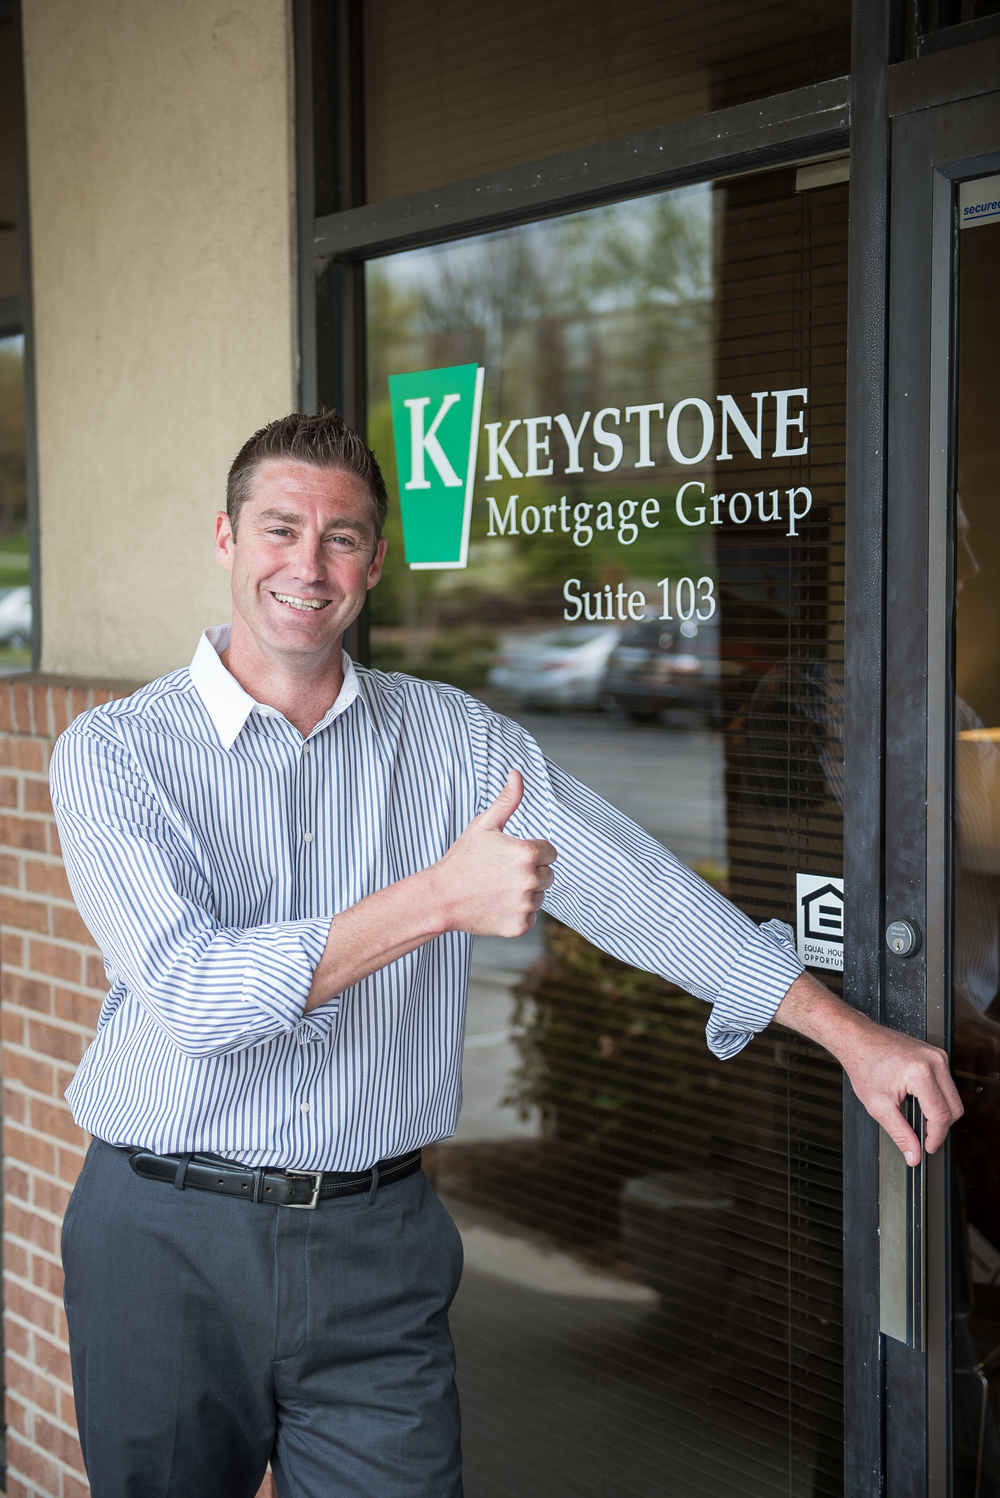 I Love Local Knoxville Keystone Mortgage-7550.jpg